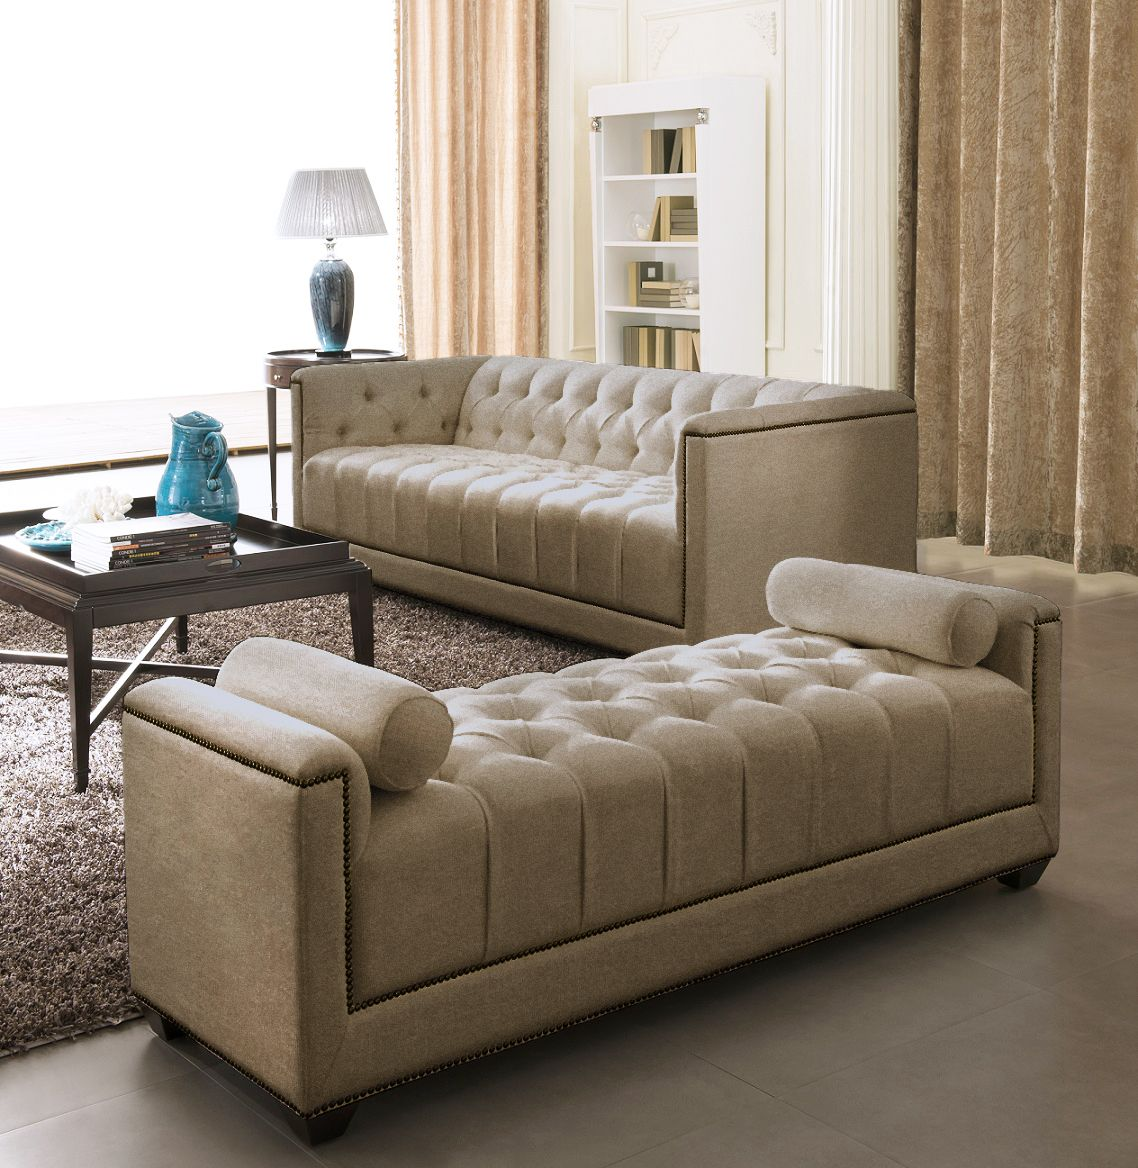 . modern sofa set designs for living room   Vijay   Living room sofa